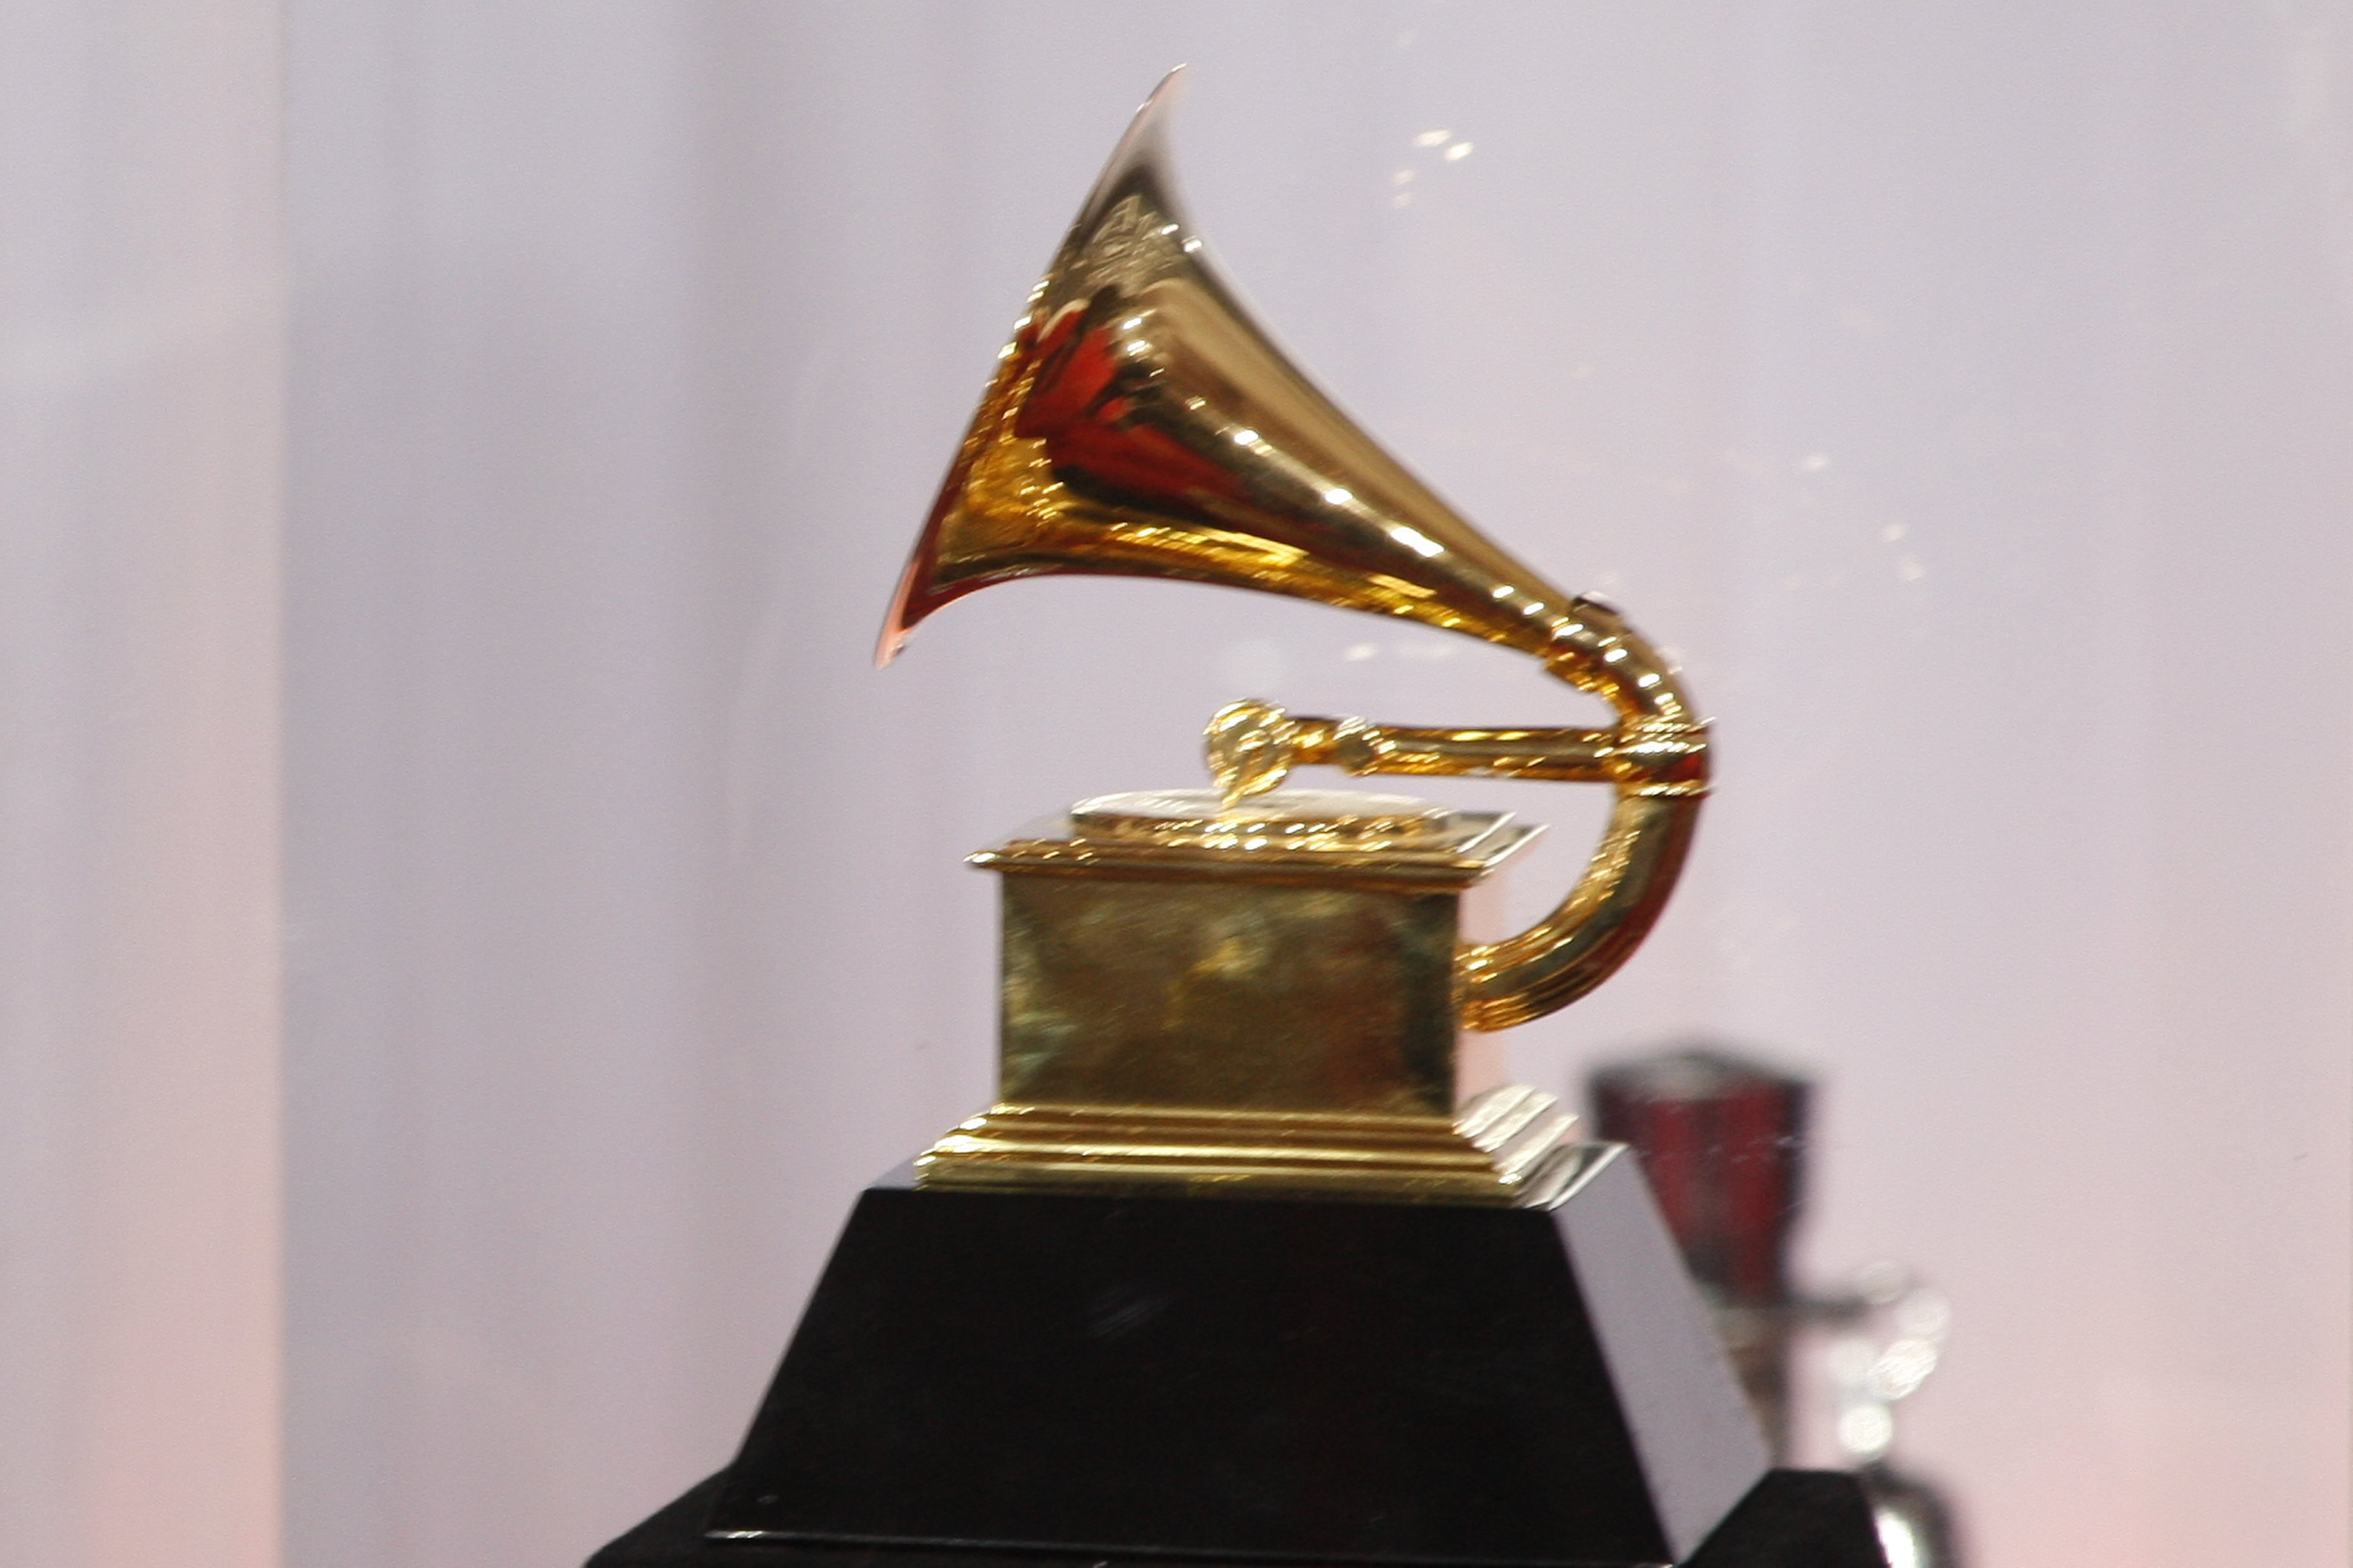 Grammy statue at the 52nd Annual Grammy Awards held at the Nokia Theater on January 31, 2010 in Los Angeles, California   Photo: Shutterstock